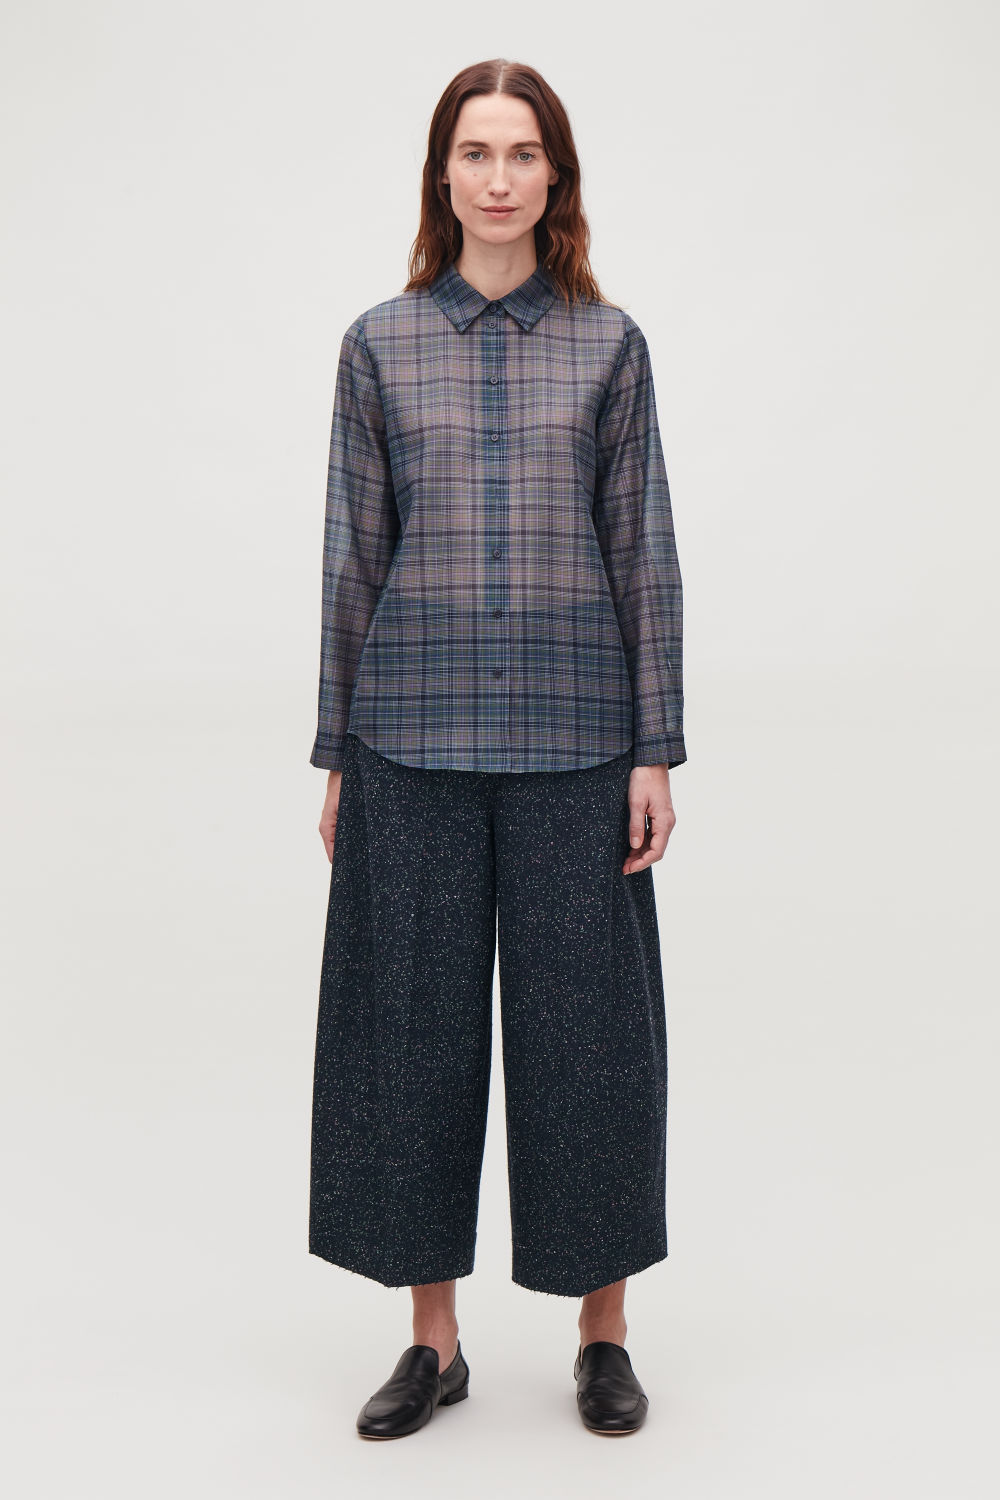 LOOP-STITCHED ROUNDED WOOL CULOTTES